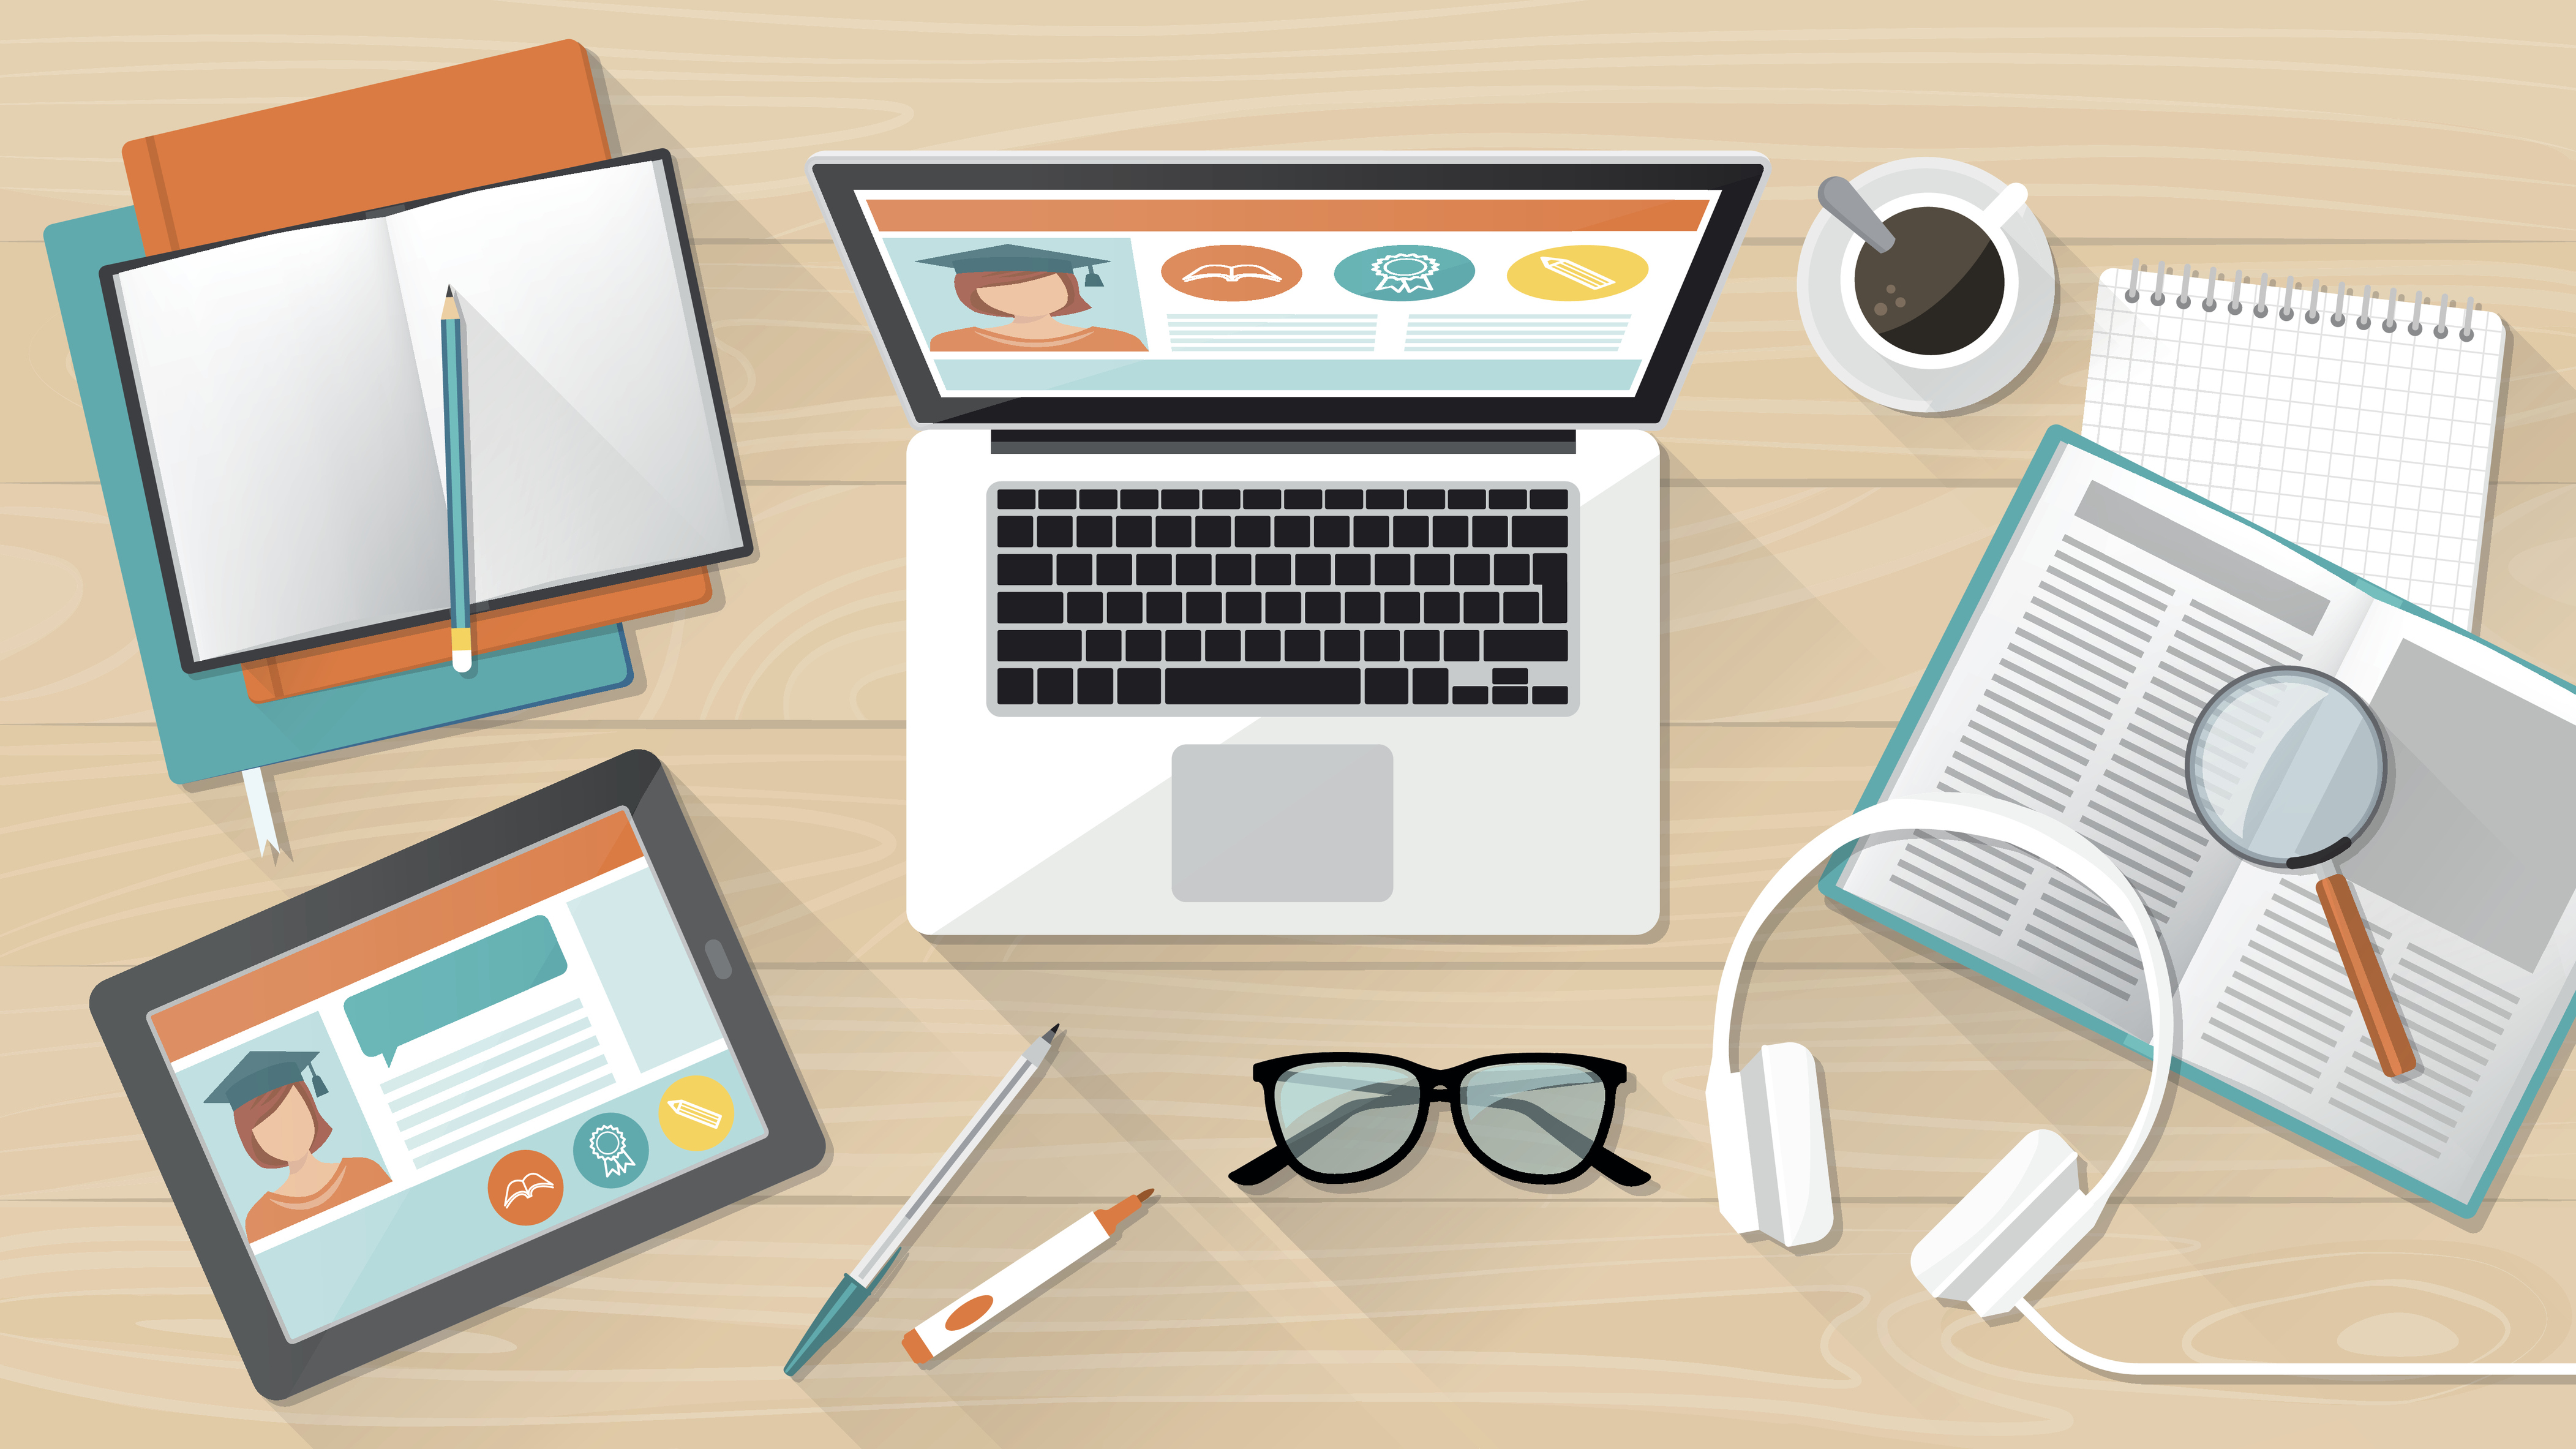 Study questions effectiveness of online education for at-risk students